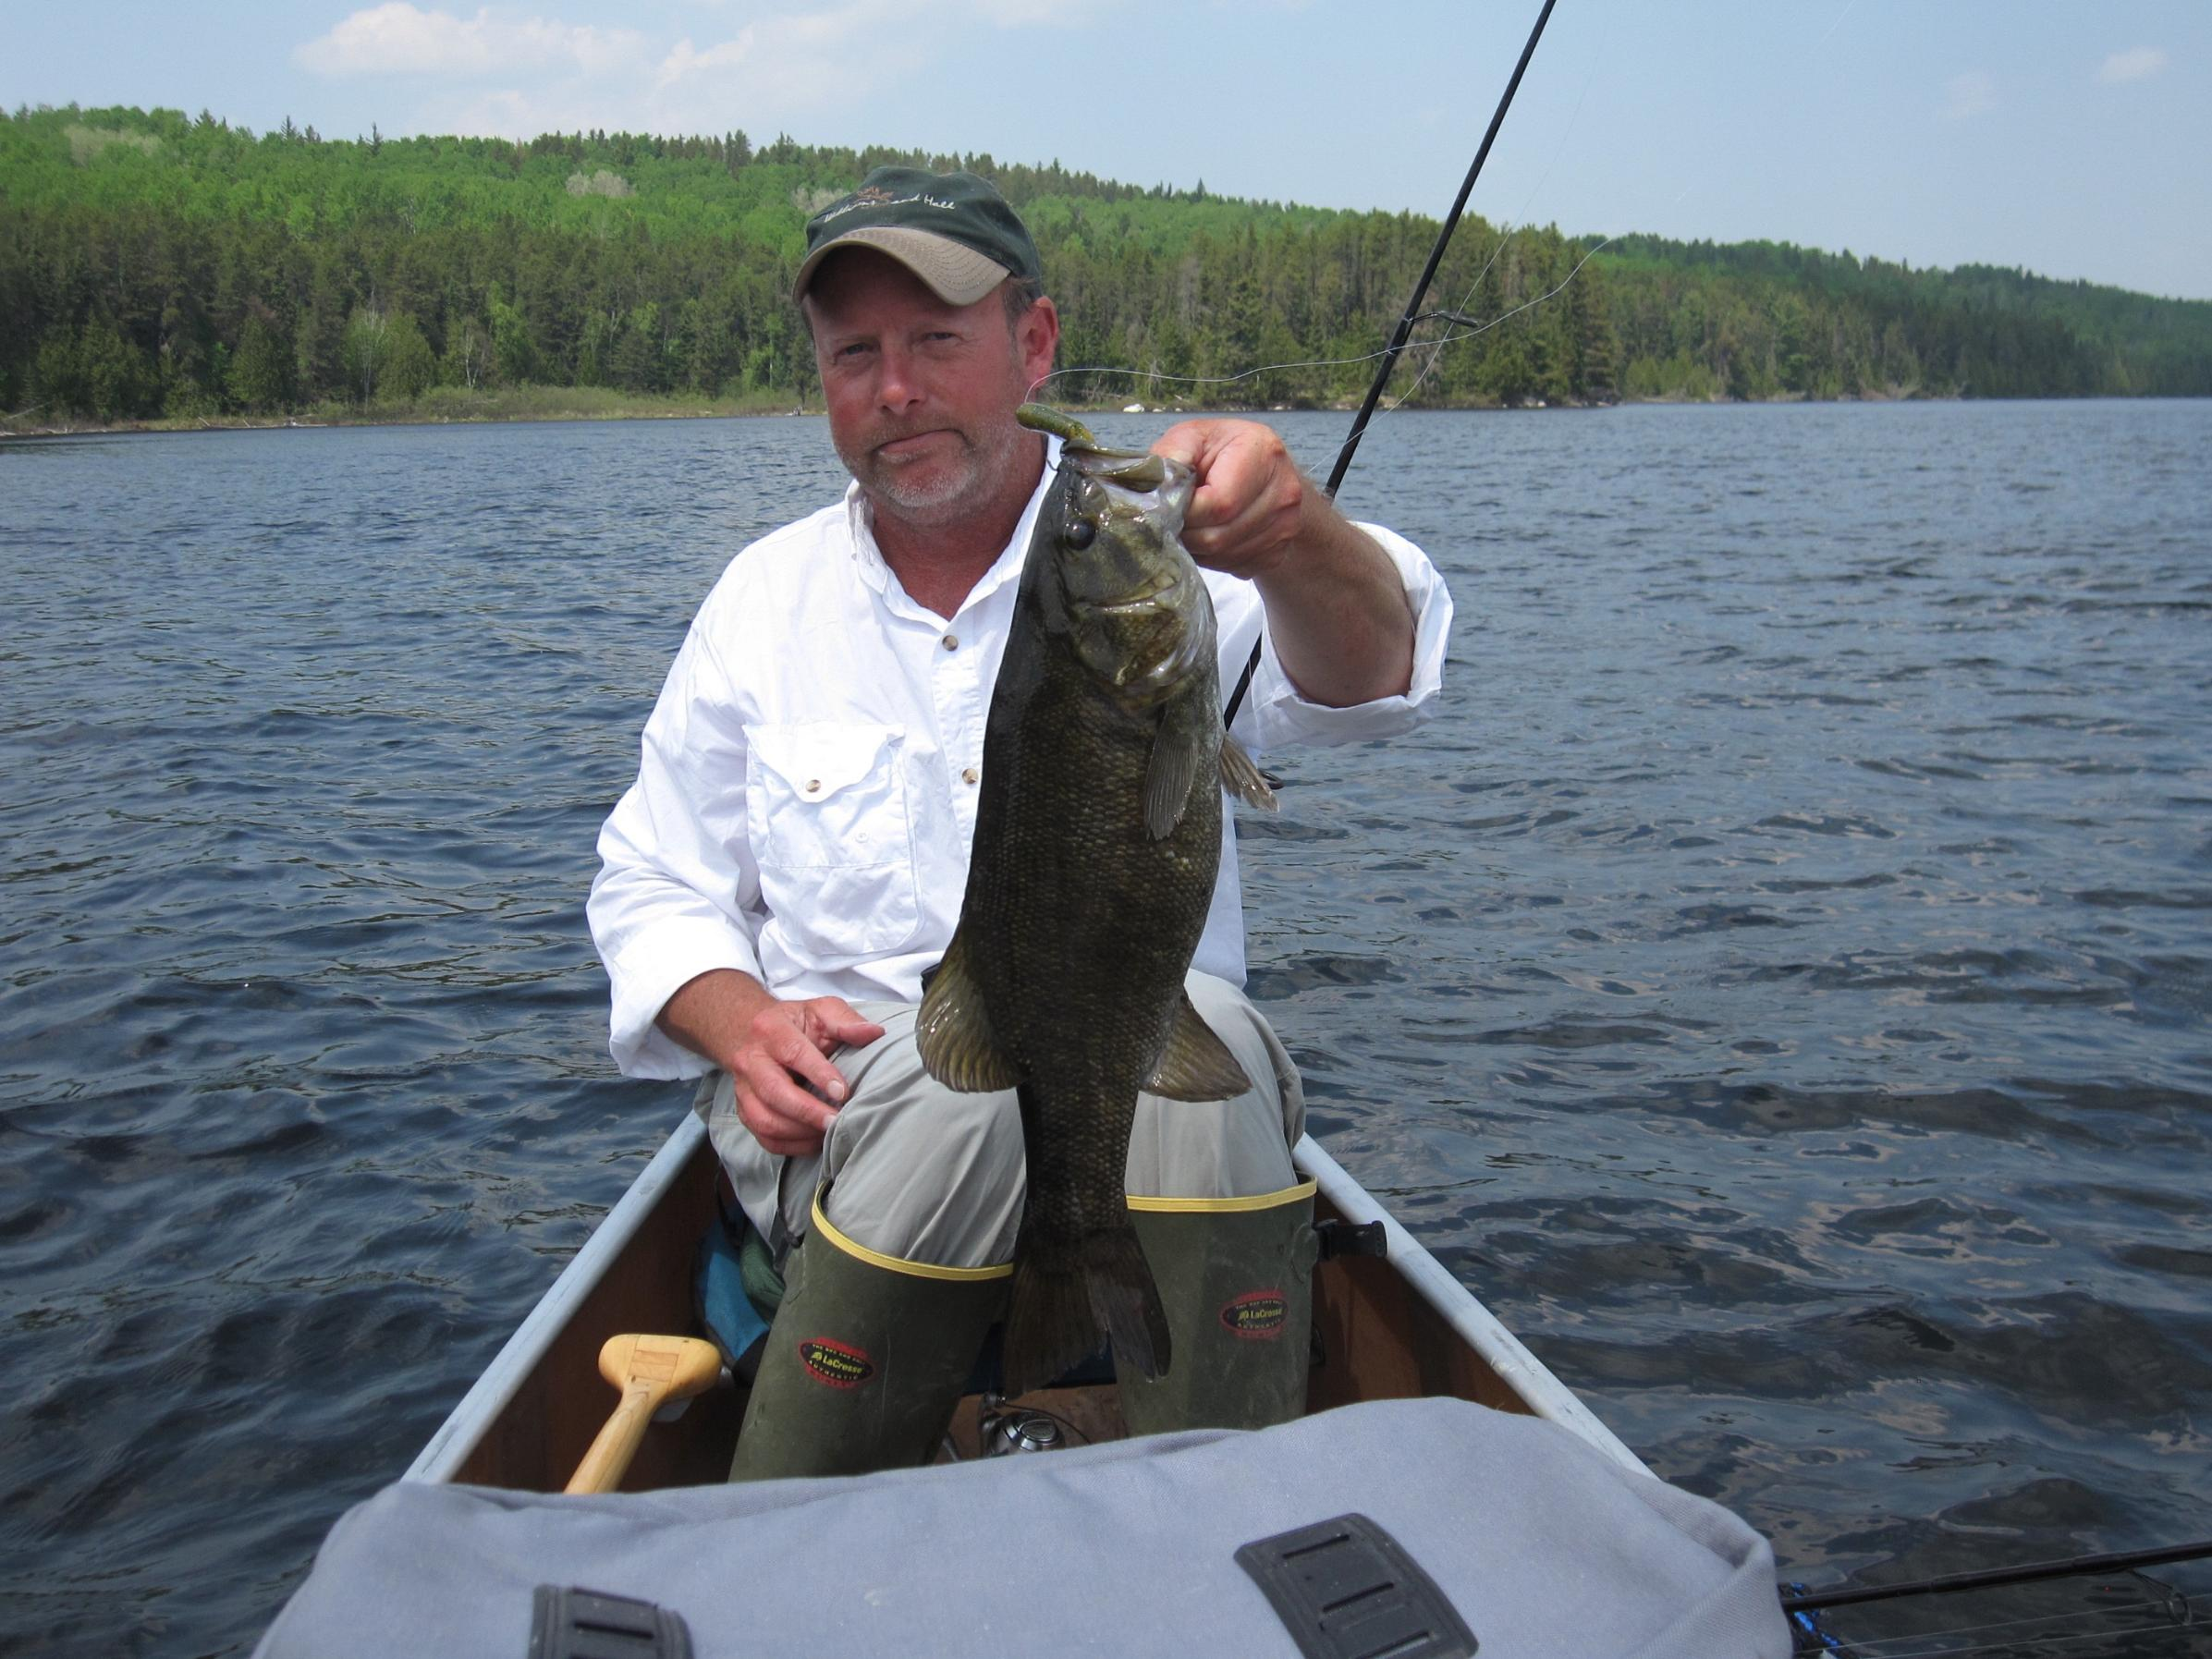 Bwca 2015 quetico smallmouth pics part 2 boundary waters for Boundary waters fishing